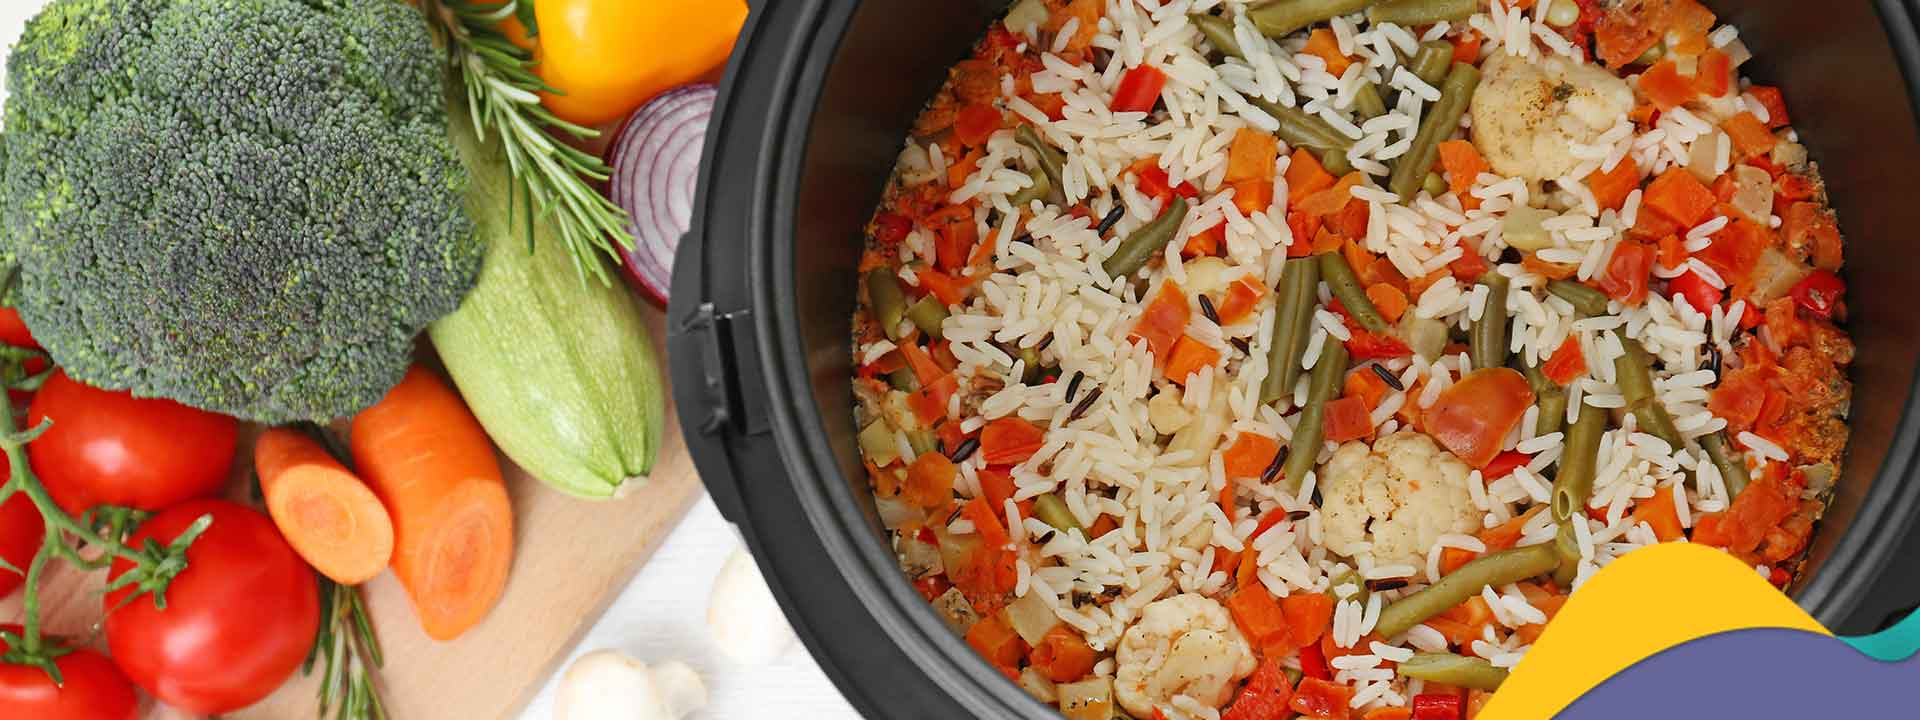 Electric Pressure Cookers efficient